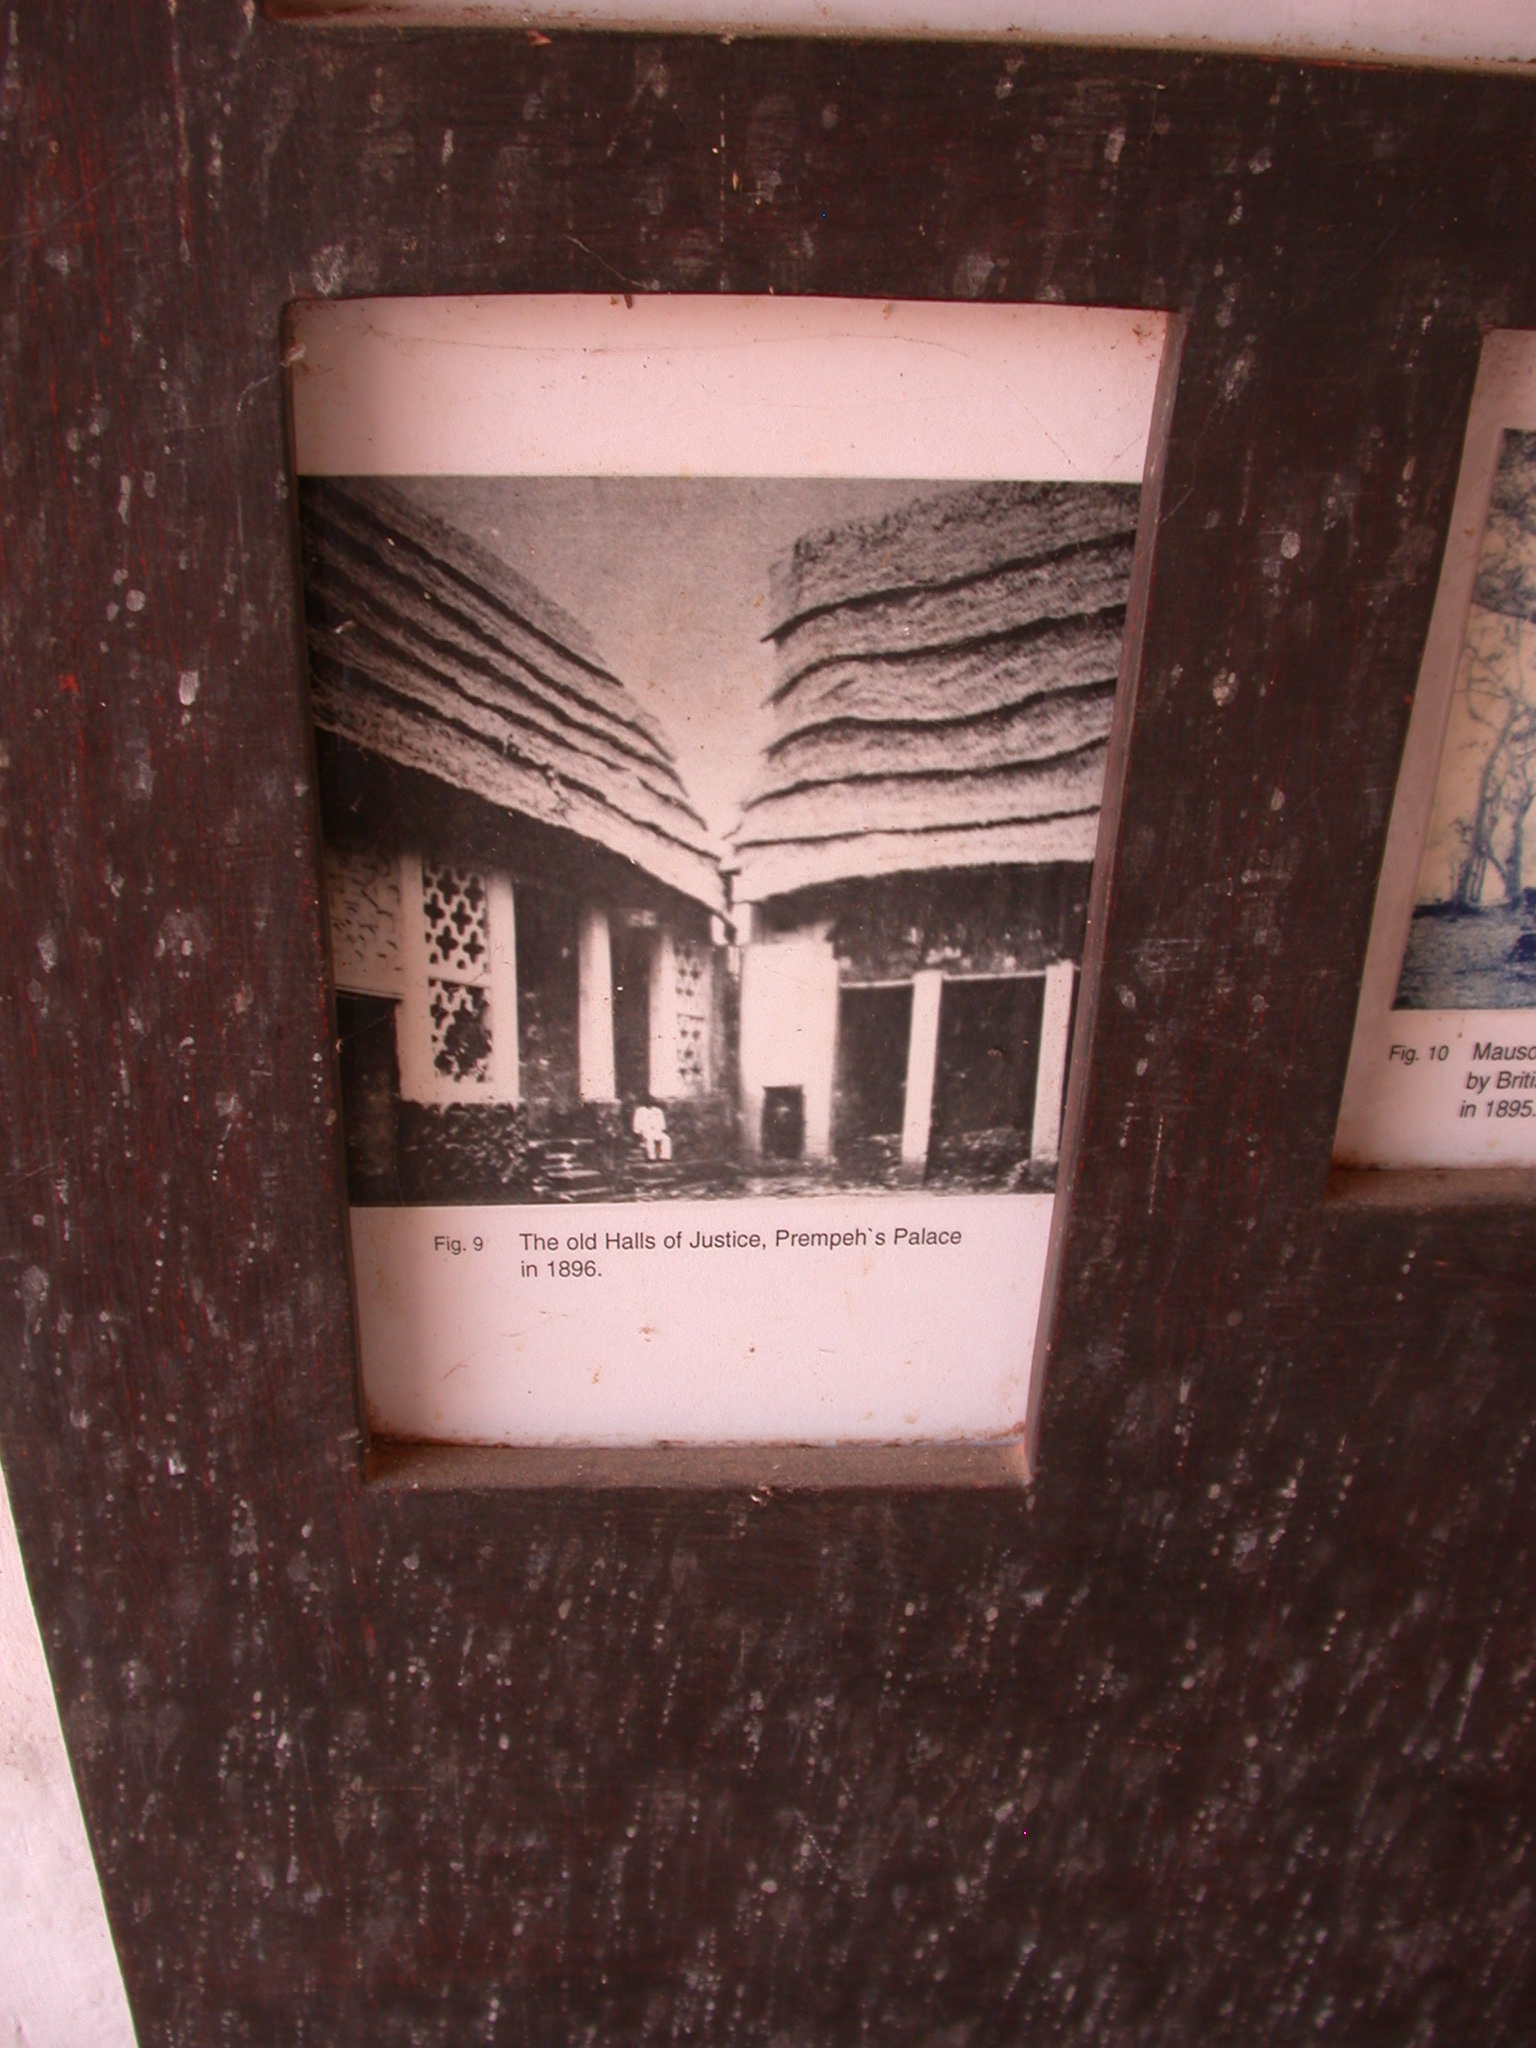 Photograph of Old Halls of Justice, Prempeh Palace in 1896, Asante Traditional Shrine at Ejisu-Besease, Ghana